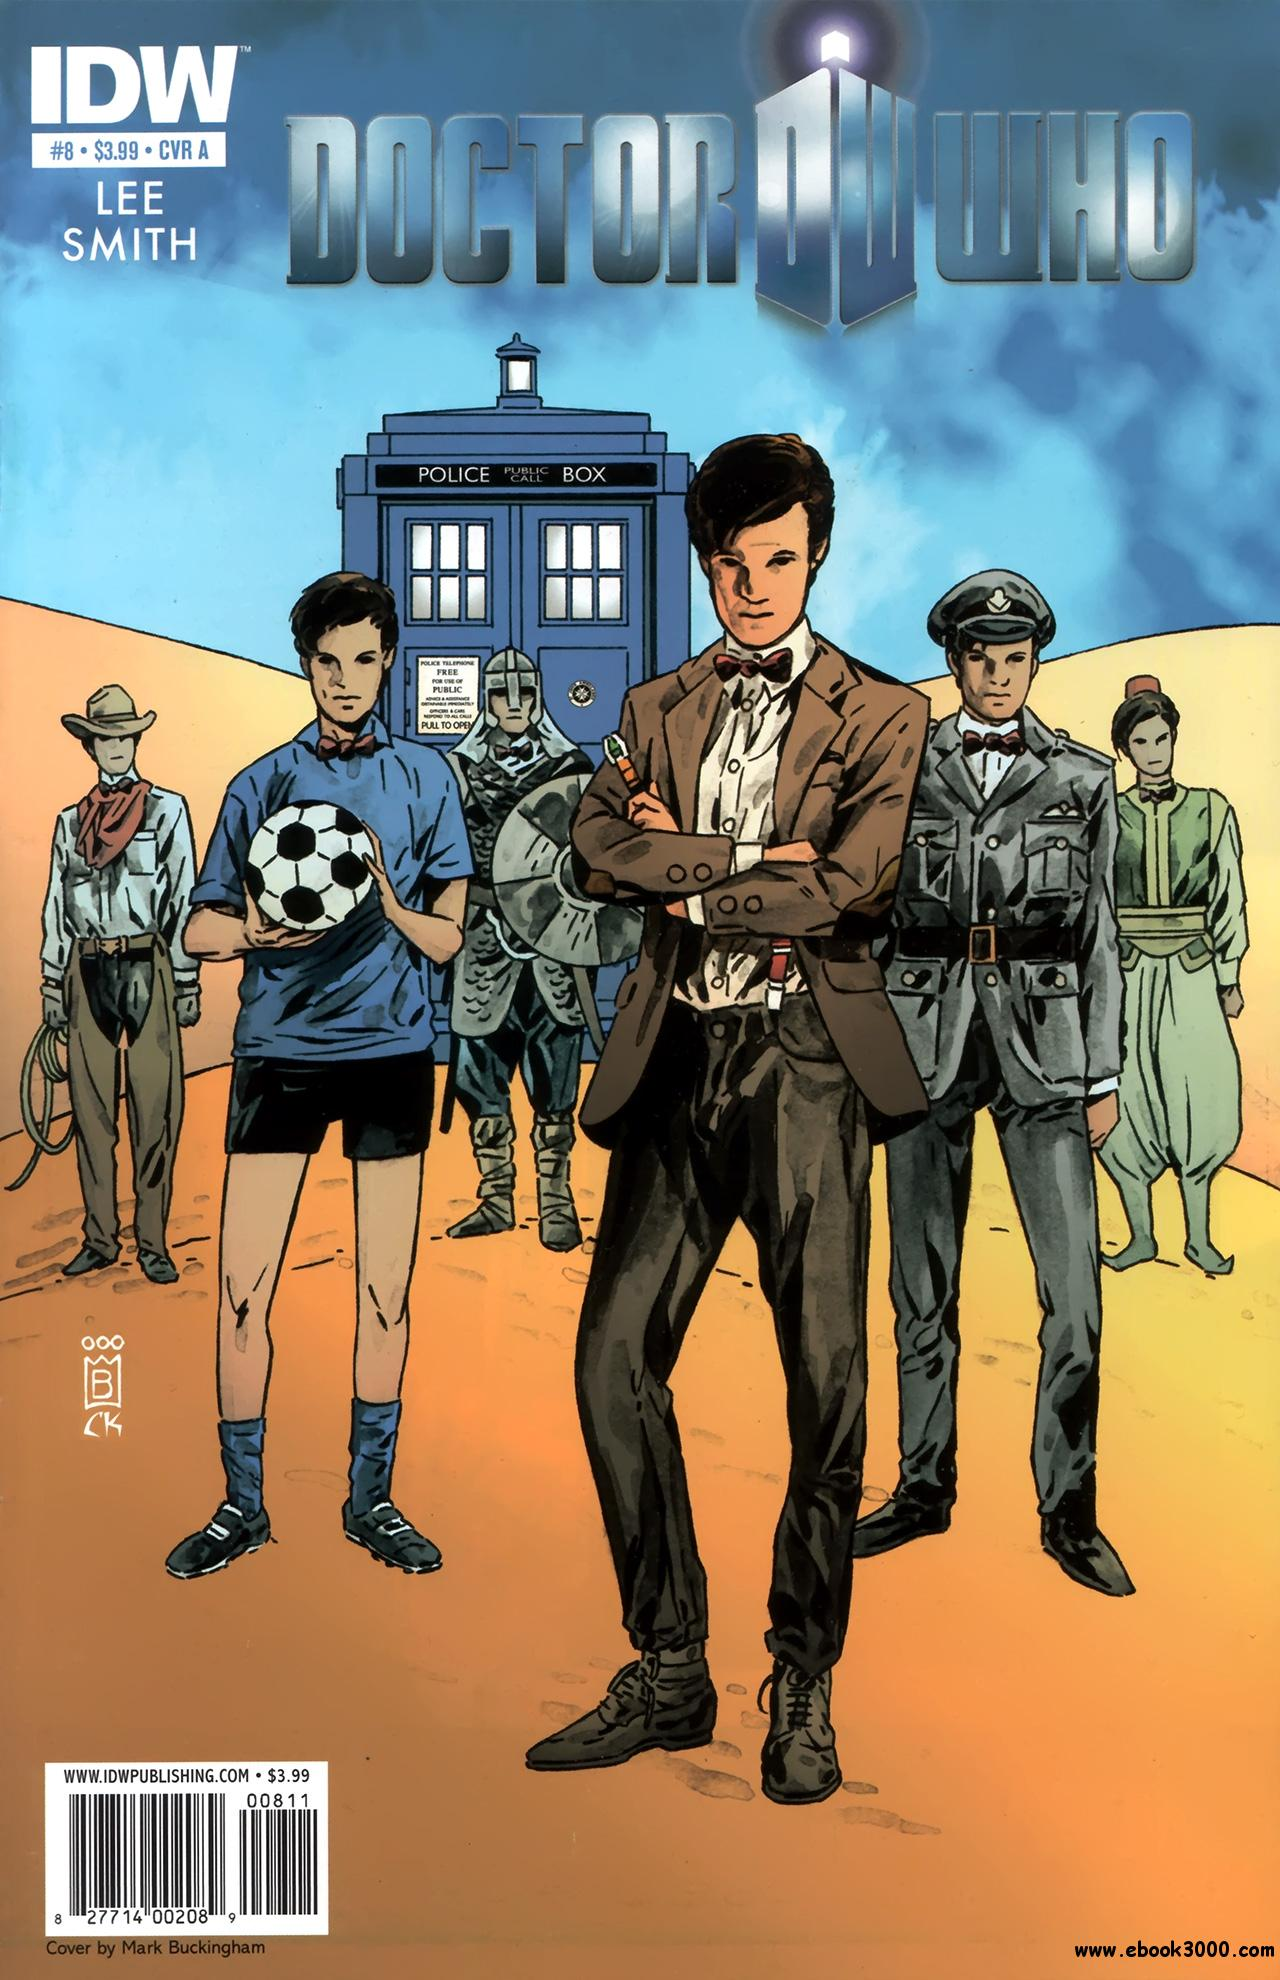 Doctor Who #8 (2011) free download